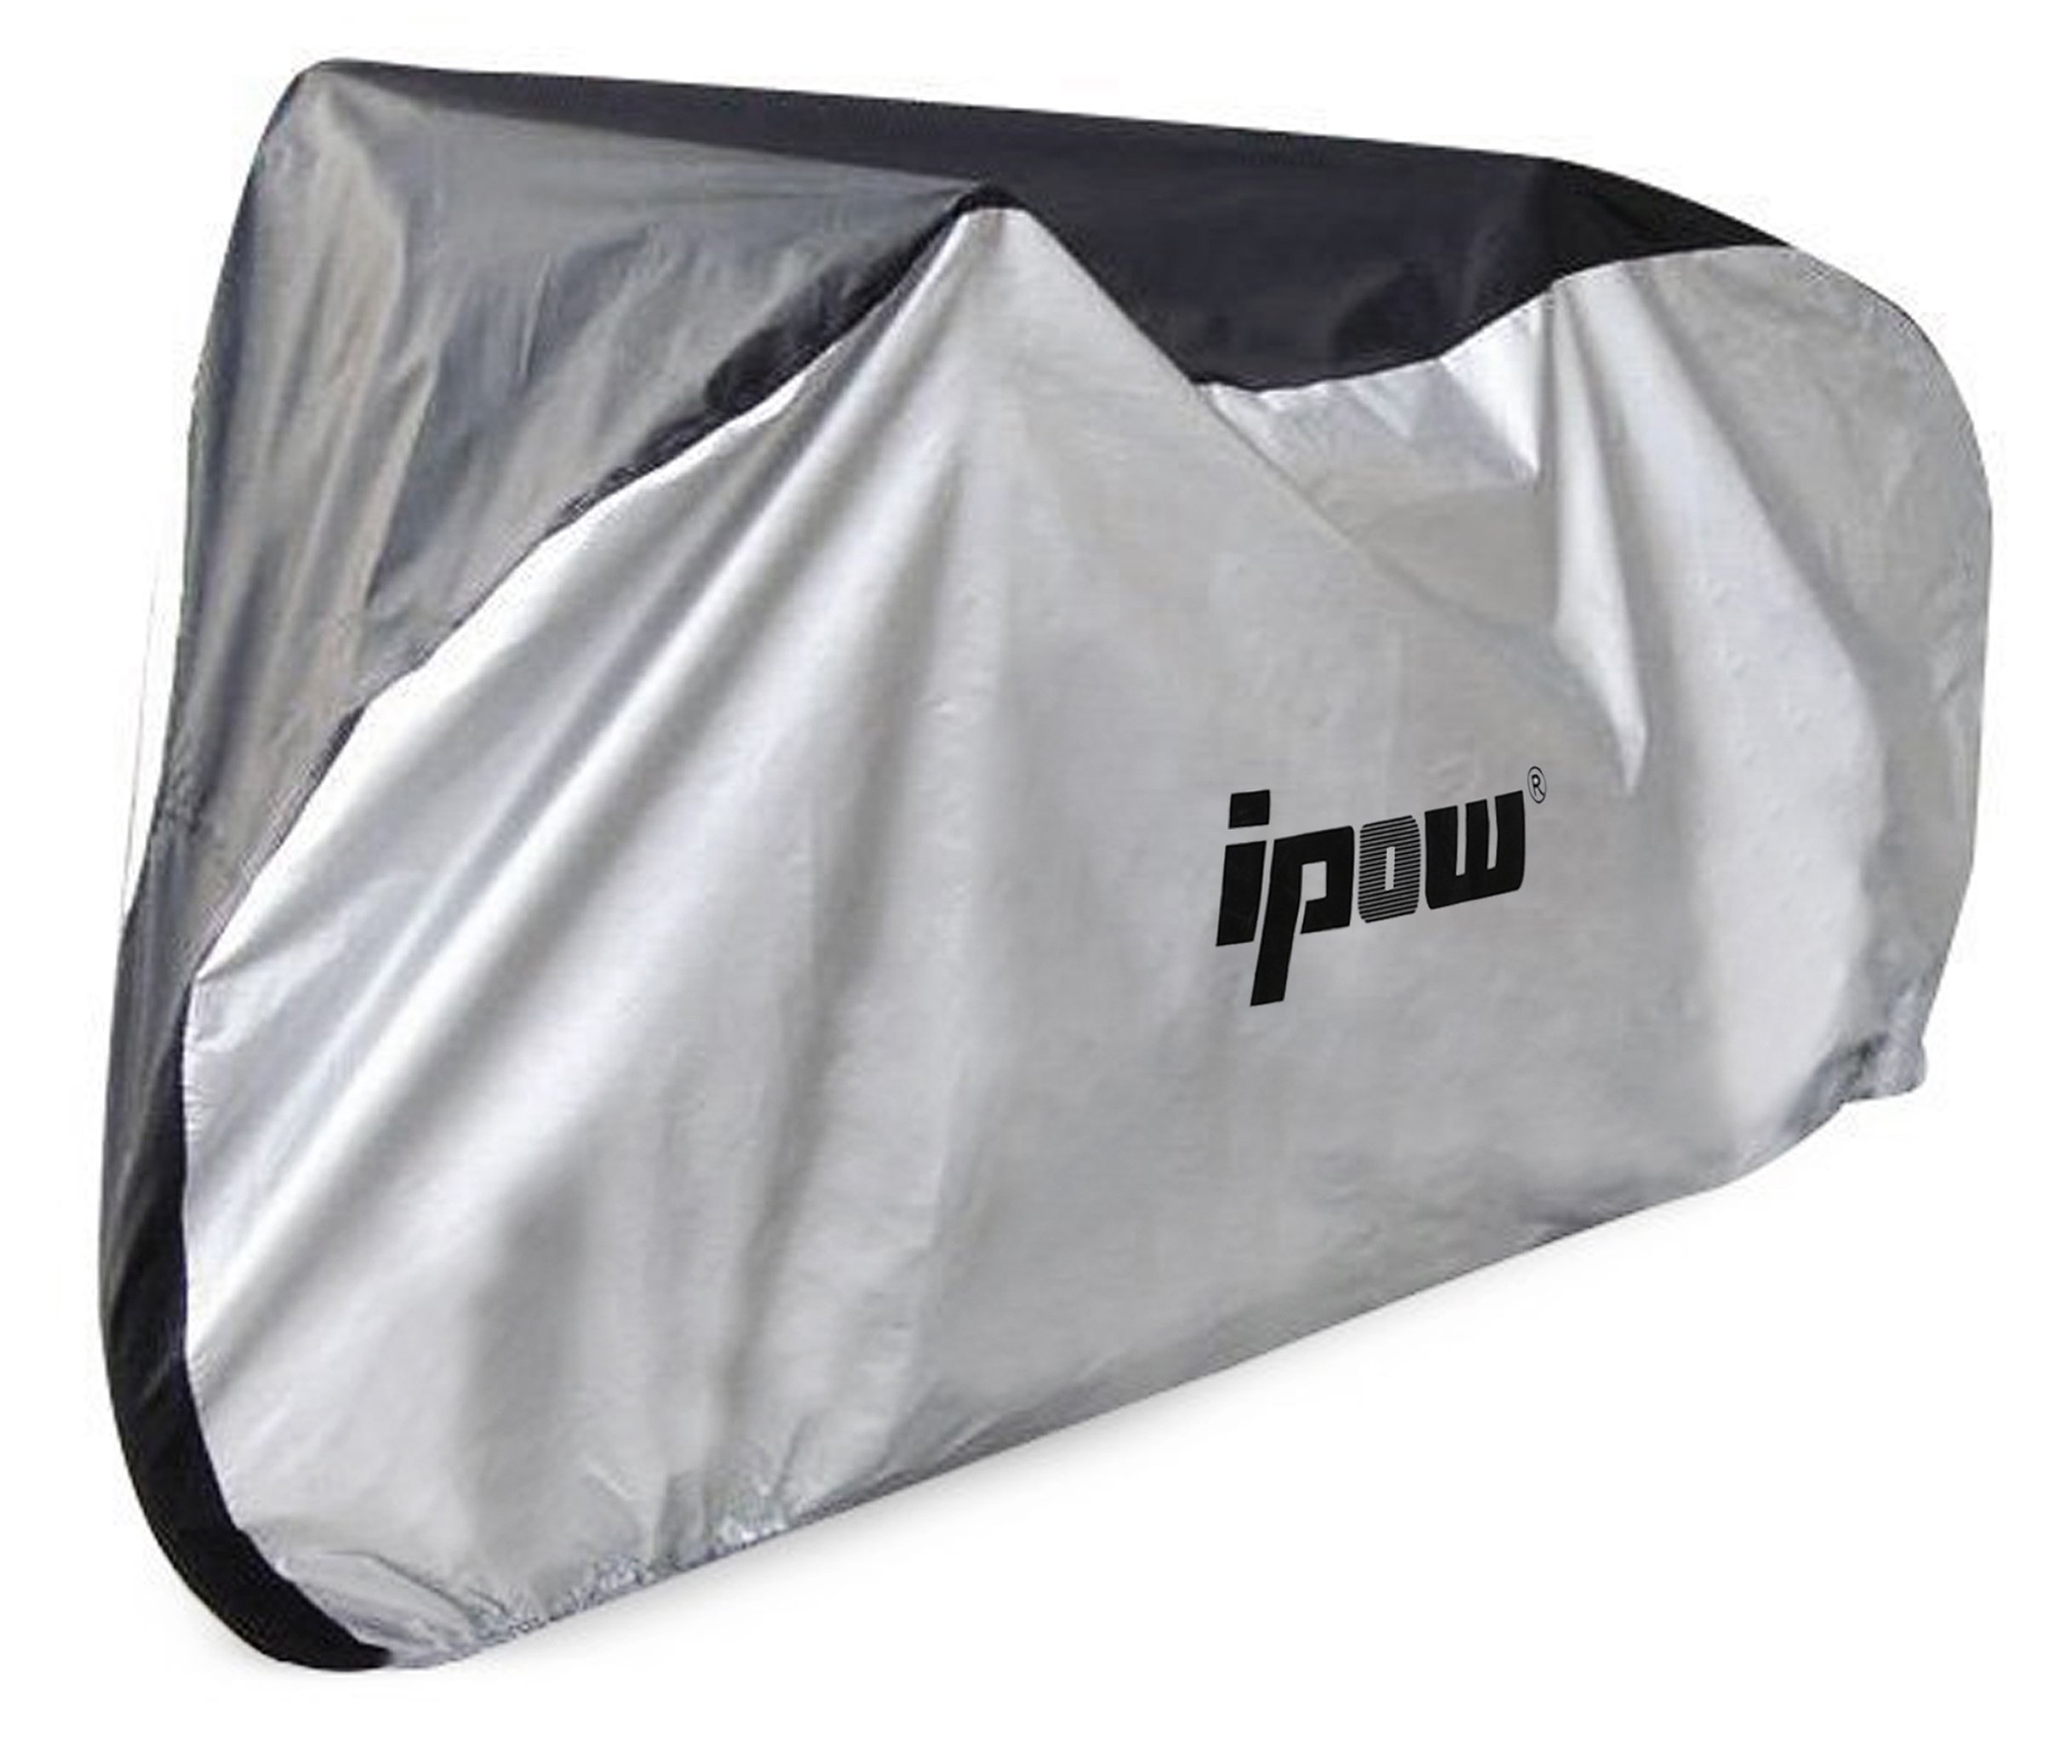 IPOW 210D Thicken Oxford Fabric Waterproof Snowproof UV Protective Cycle Bike Bicycle Cover with Bag Best for Mountain Road Electric and Cruiser Bikes by IPOW (Image #1)